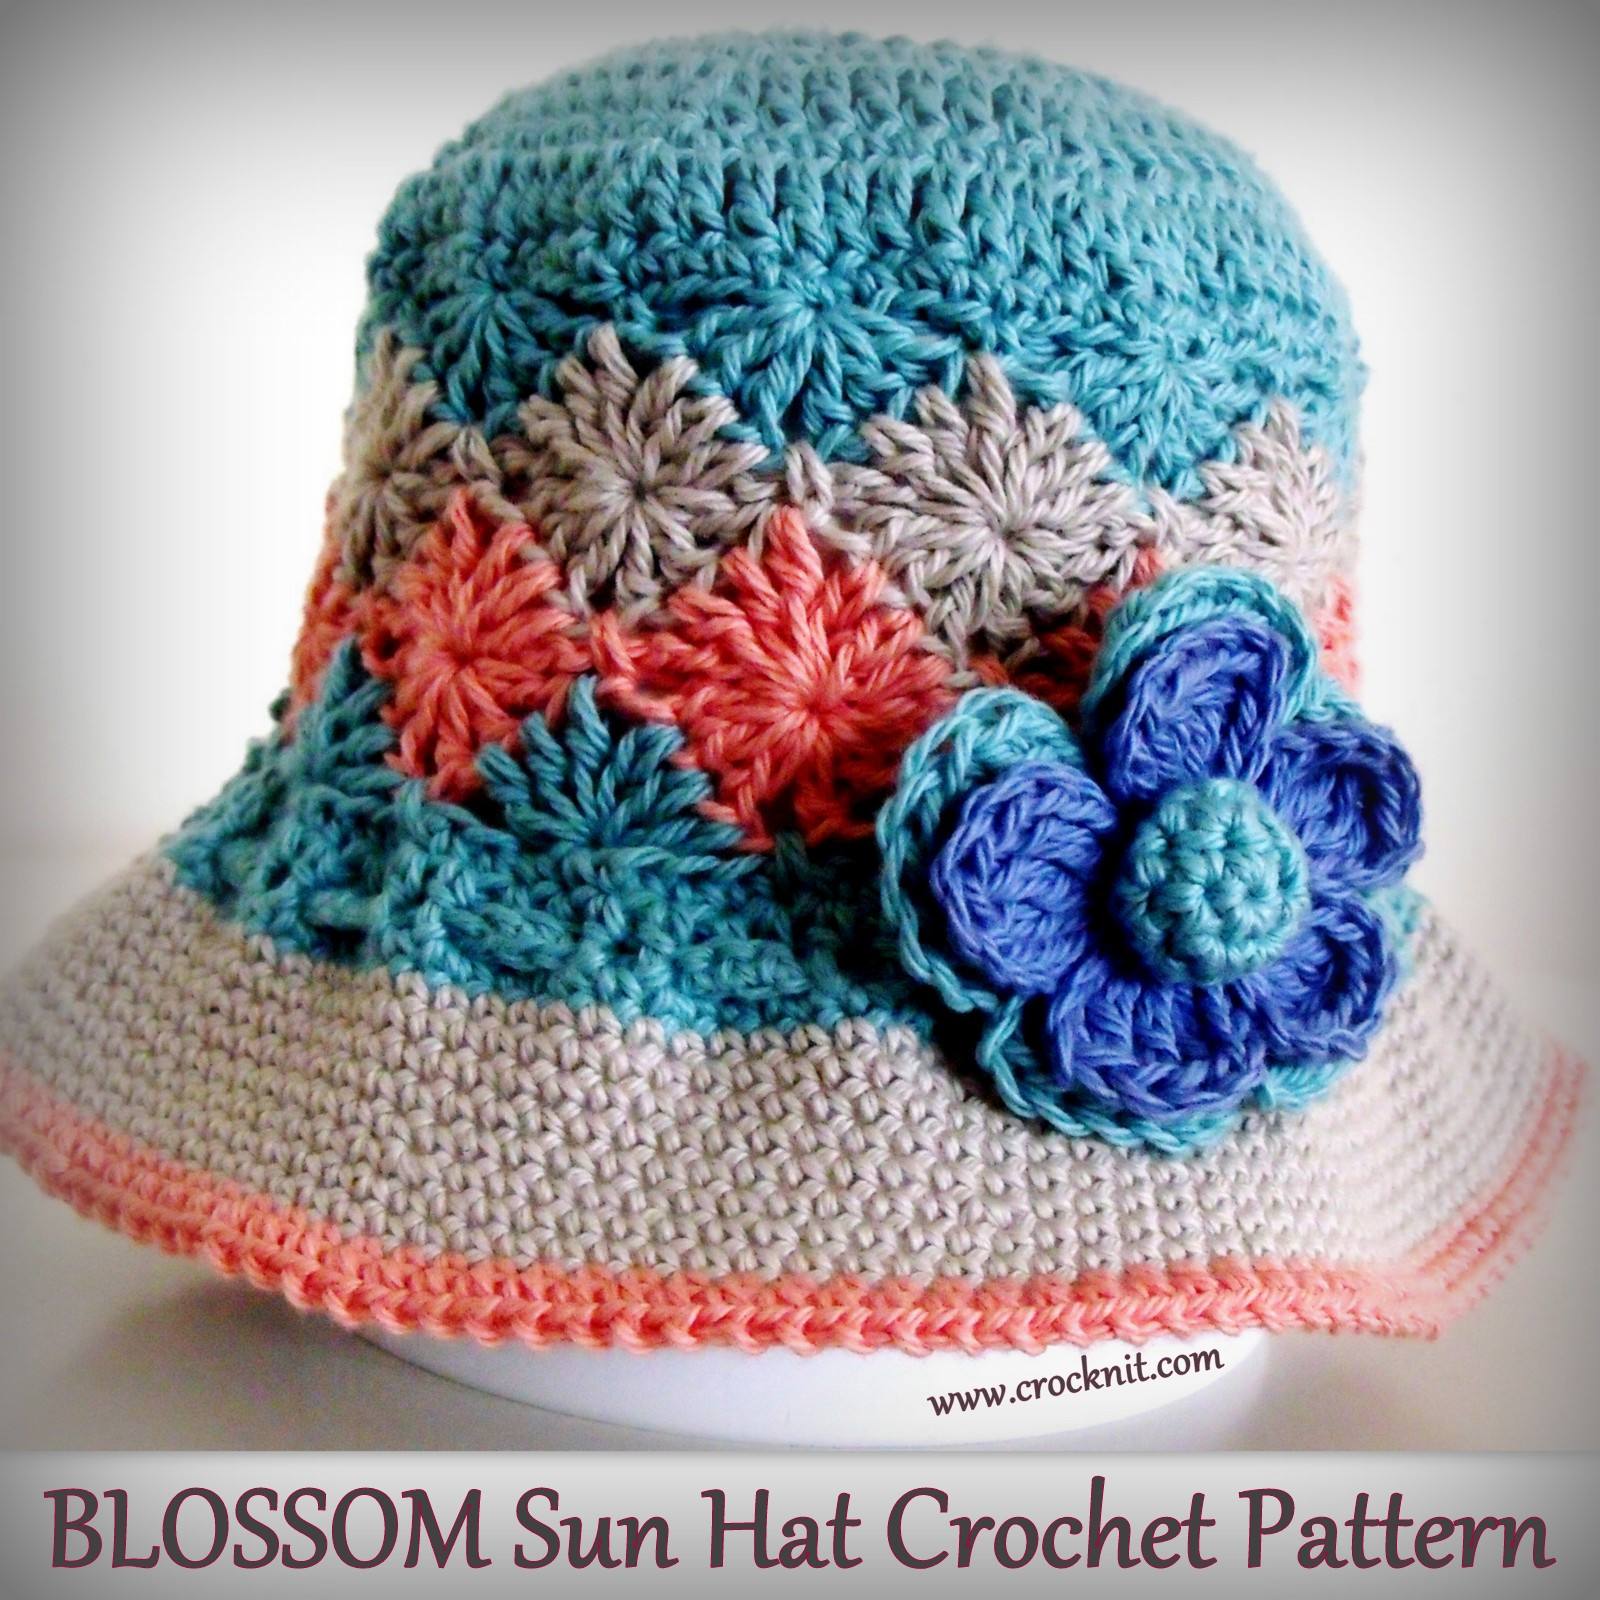 Beautiful Microcknit Creations Spring Sun Hats Crochet Sun Hat Pattern Of Superb 48 Ideas Crochet Sun Hat Pattern